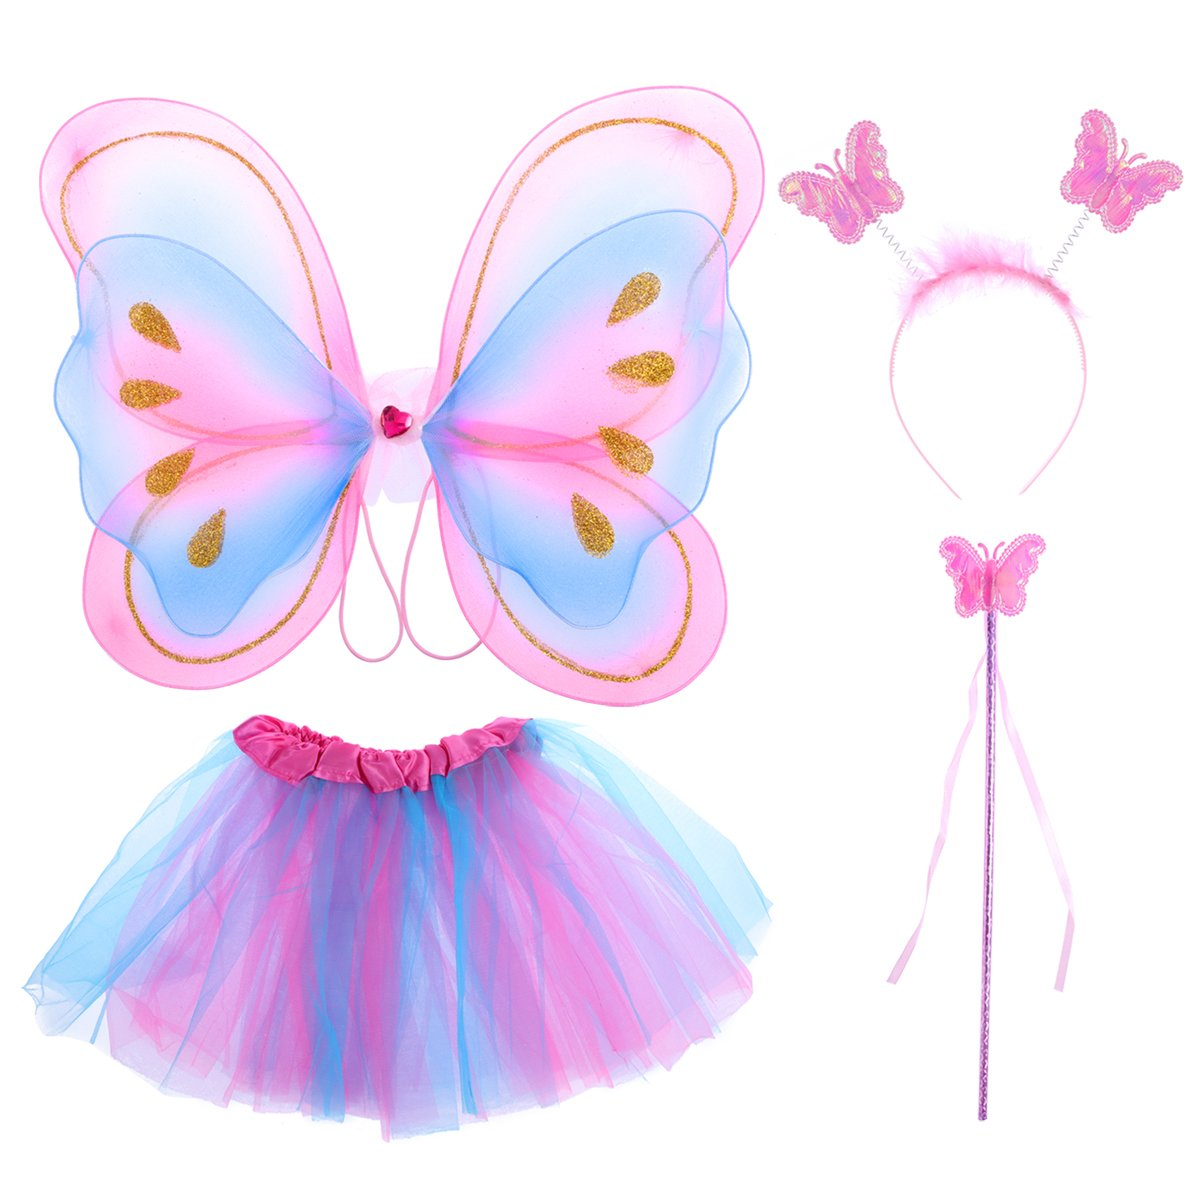 dbaa9a5fef13 LUOEM Kids Princess Fairy Costume Butterfly Costumes Outfit Set ...